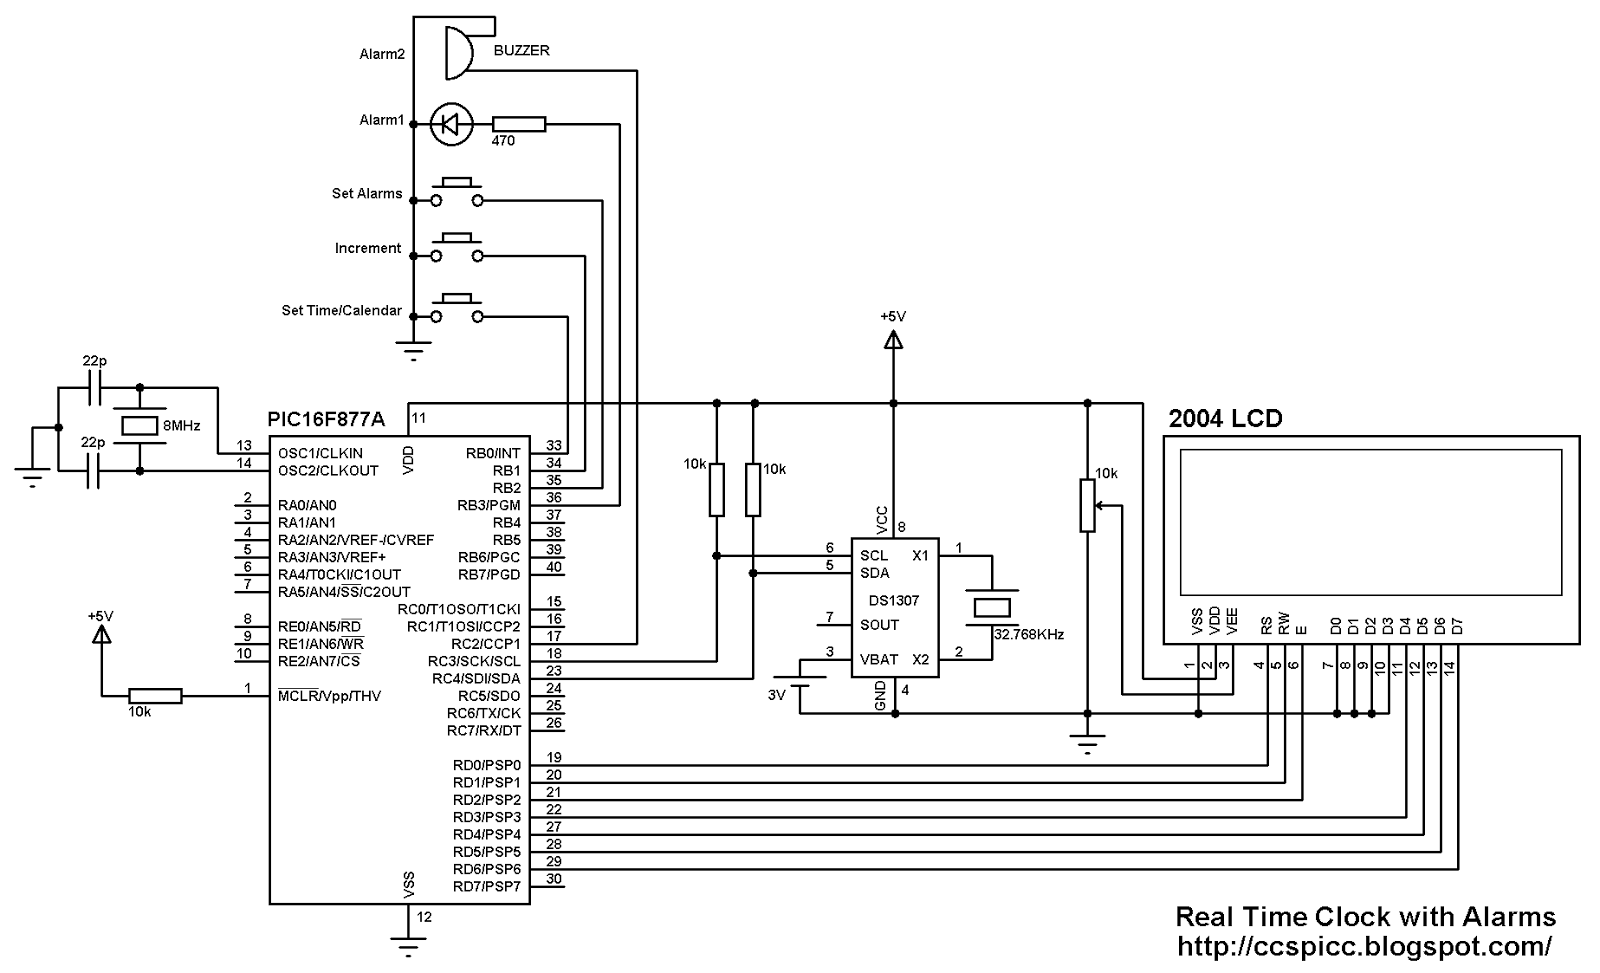 real time clock with alarm using pic16f877a and ds1307 rtc